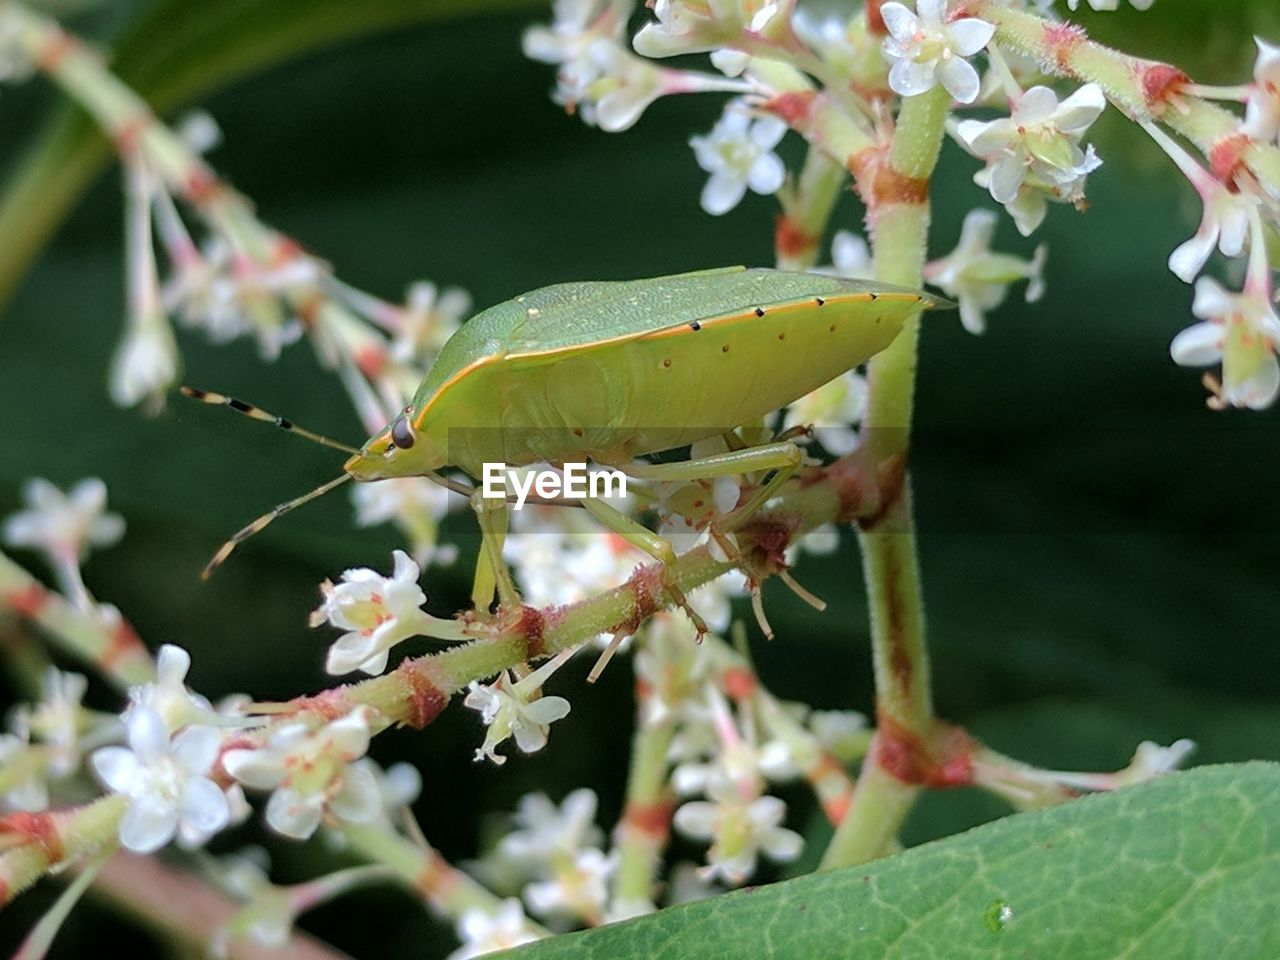 CLOSE-UP OF INSECT ON FLOWERS